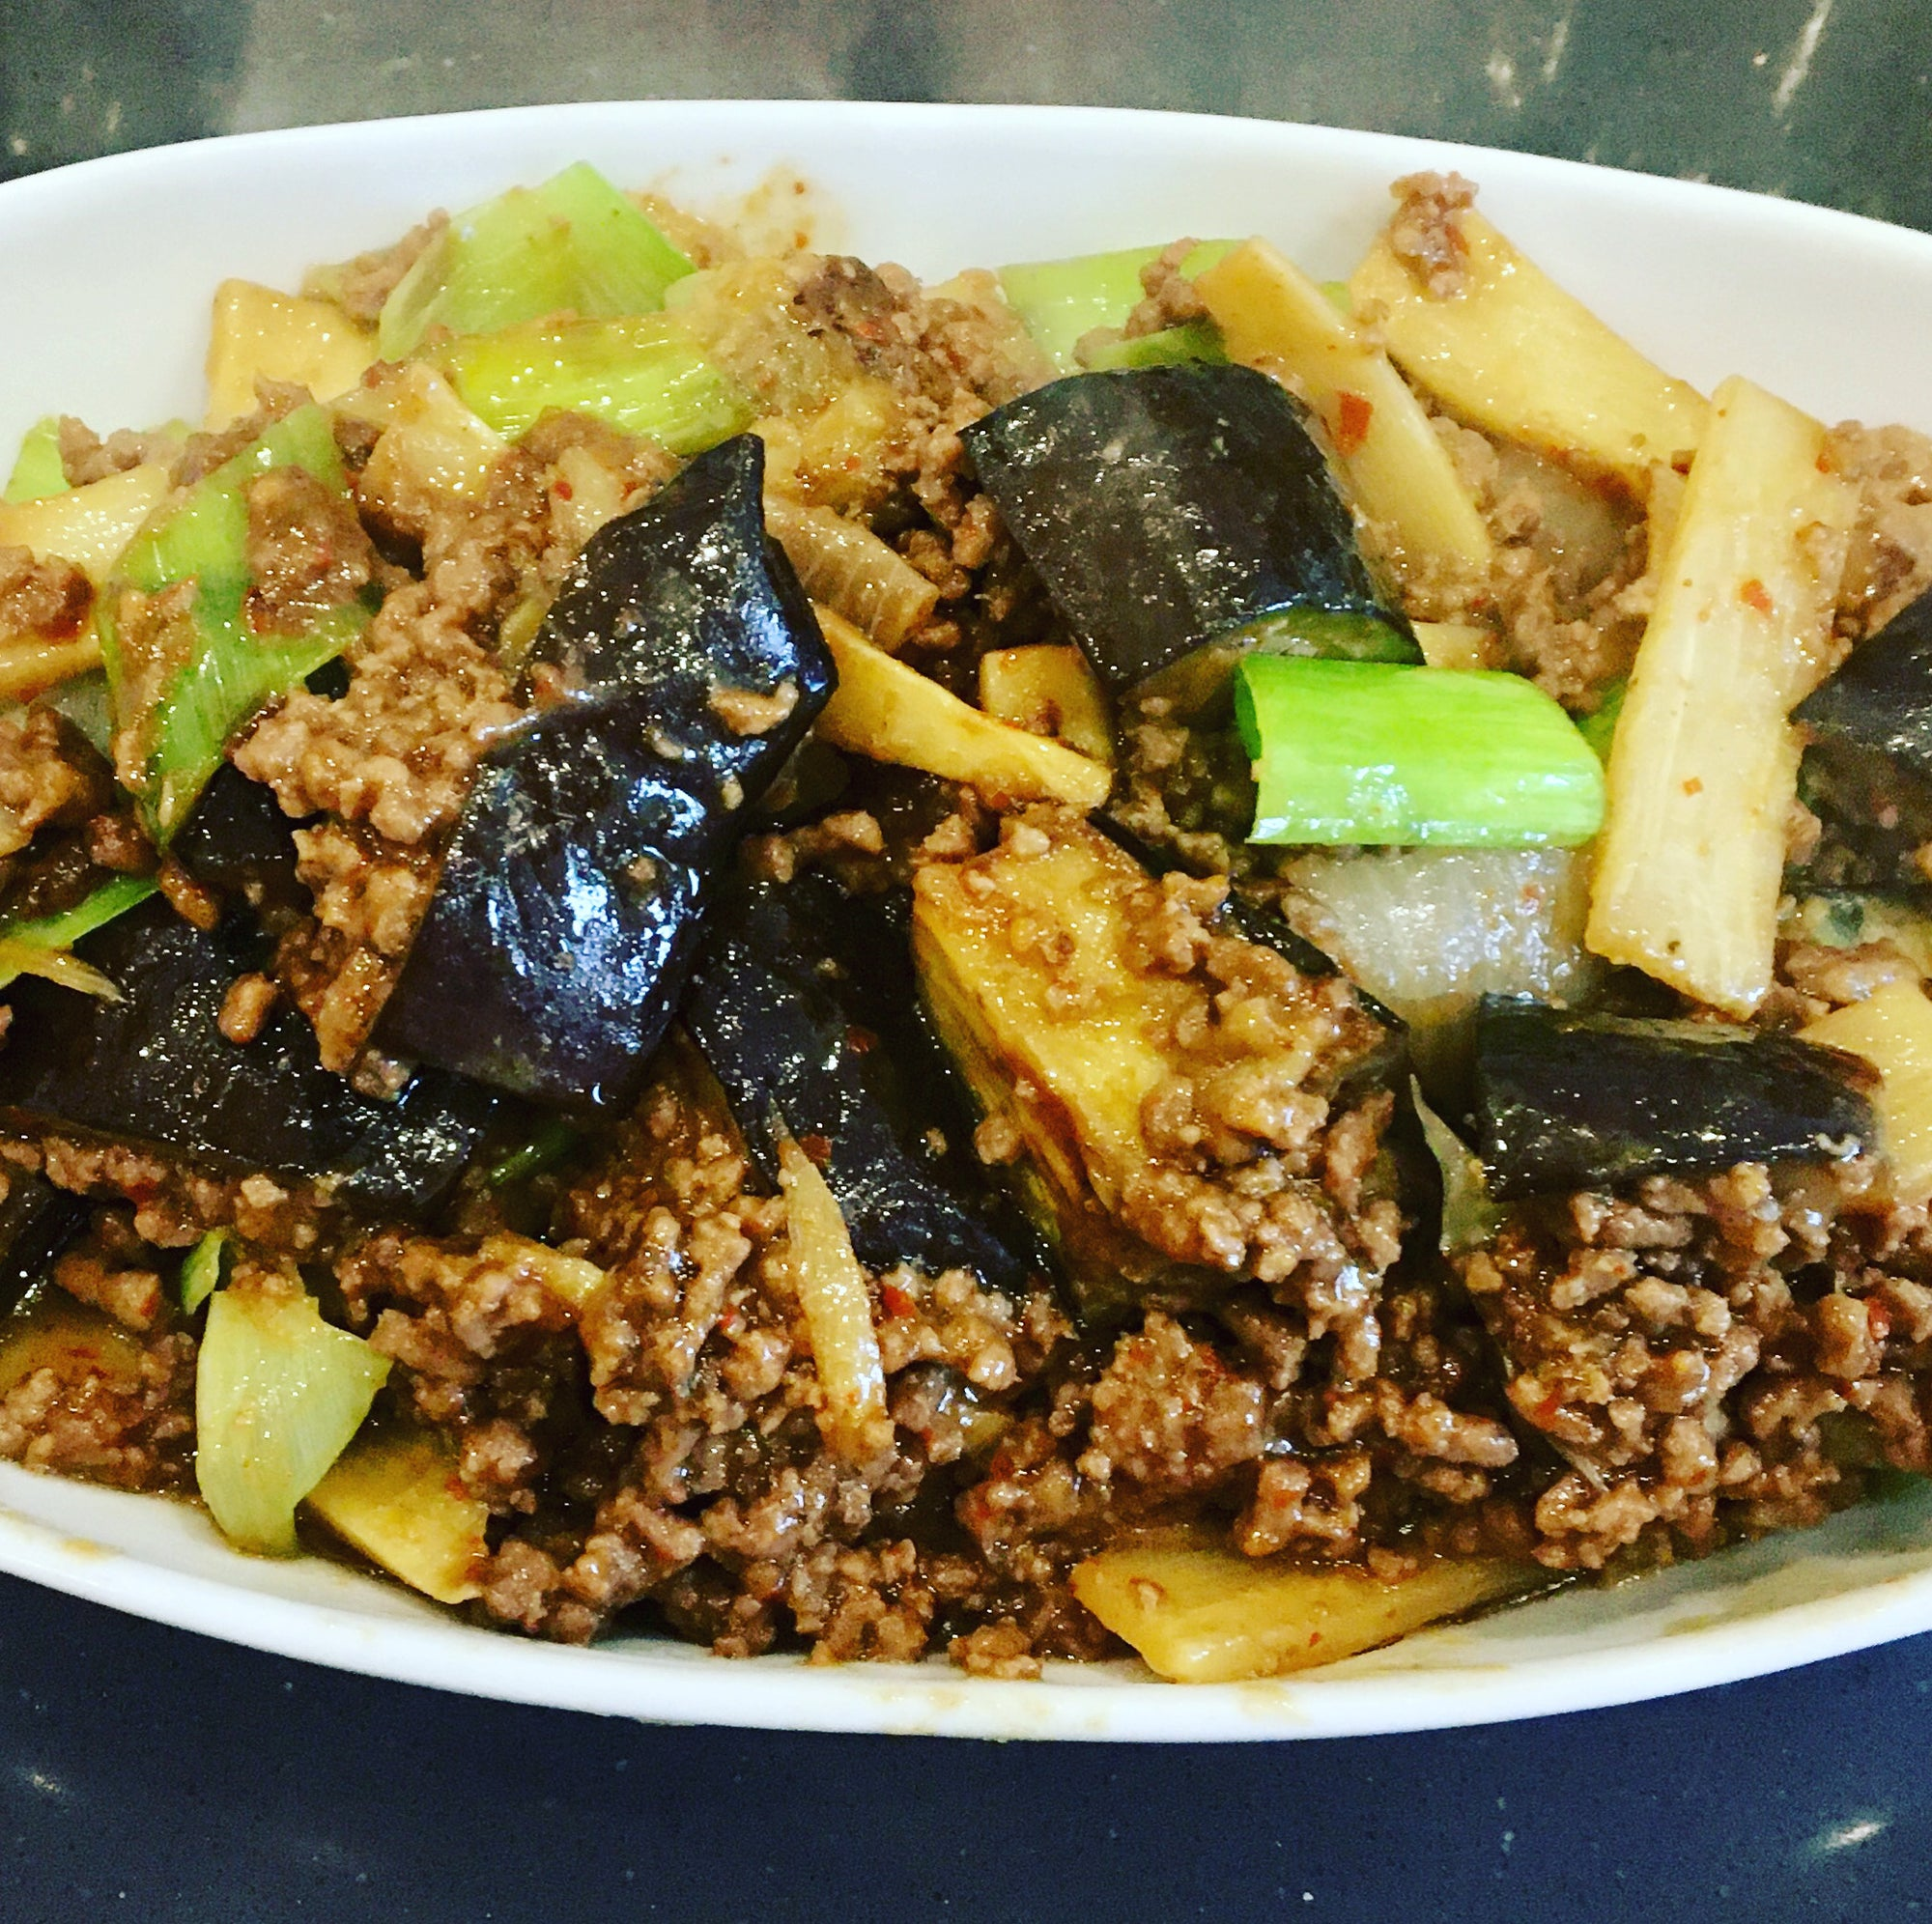 Mince & Aubergine in Chilli & Garlic Sauce.